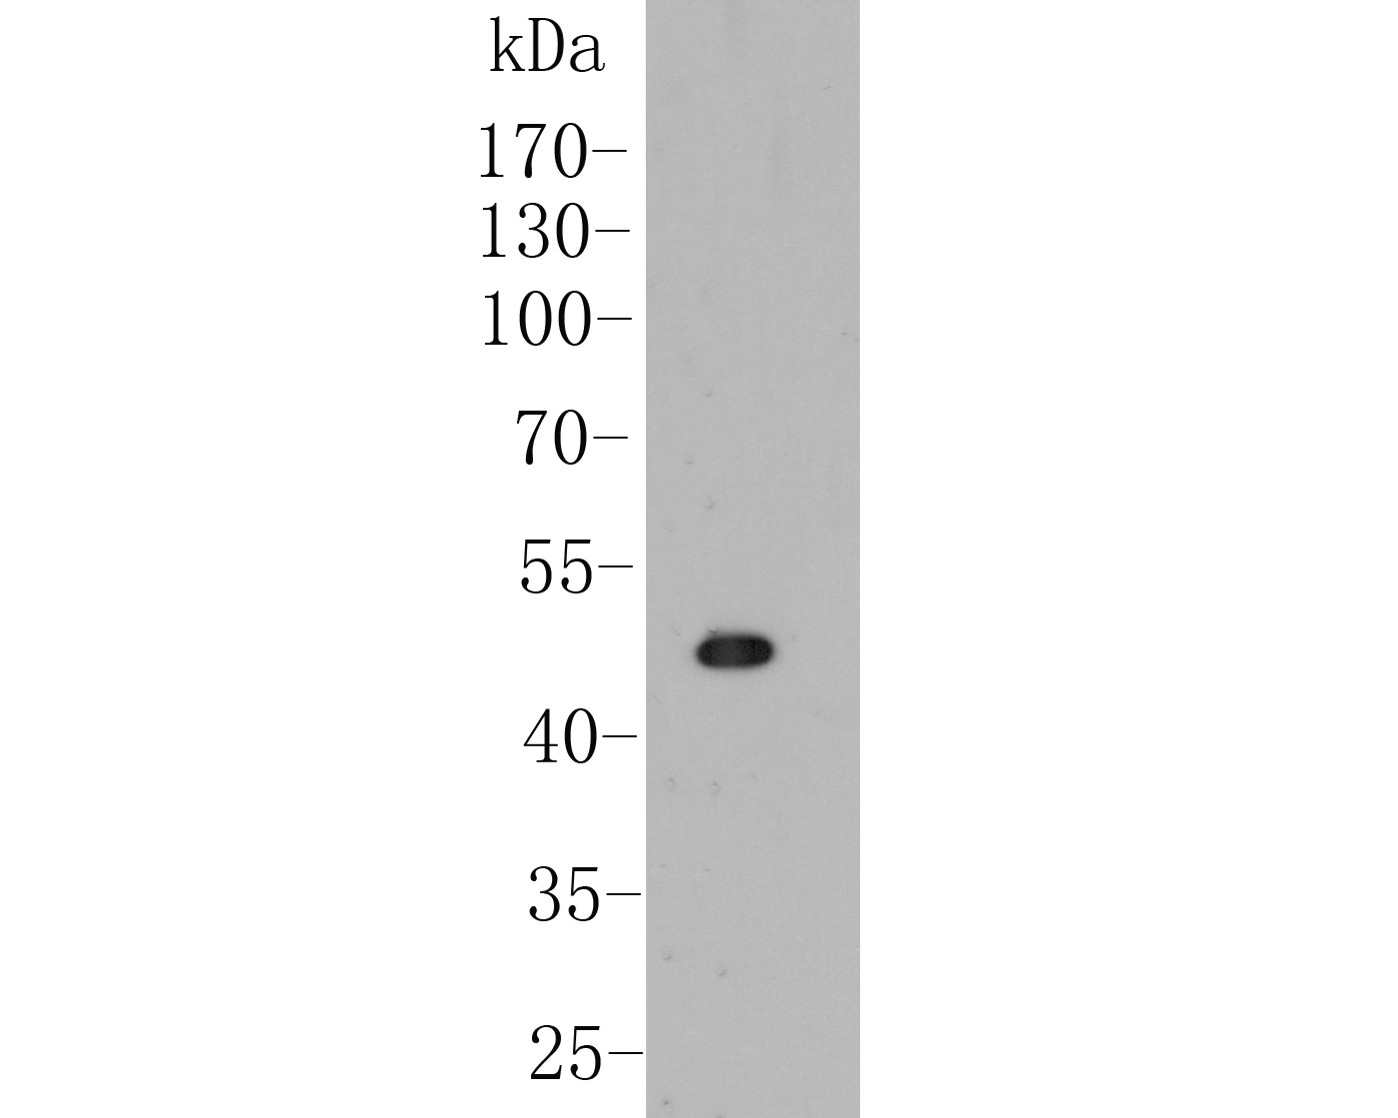 Western blot analysis of B3GAT1 on 293 cell lysate. Proteins were transferred to a PVDF membrane and blocked with 5% BSA in PBS for 1 hour at room temperature. The primary antibody (ER1901-83, 1/1000) was used in 5% BSA at room temperature for 2 hours. Goat Anti-Rabbit IgG - HRP Secondary Antibody (HA1001) at 1:5,000 dilution was used for 1 hour at room temperature.